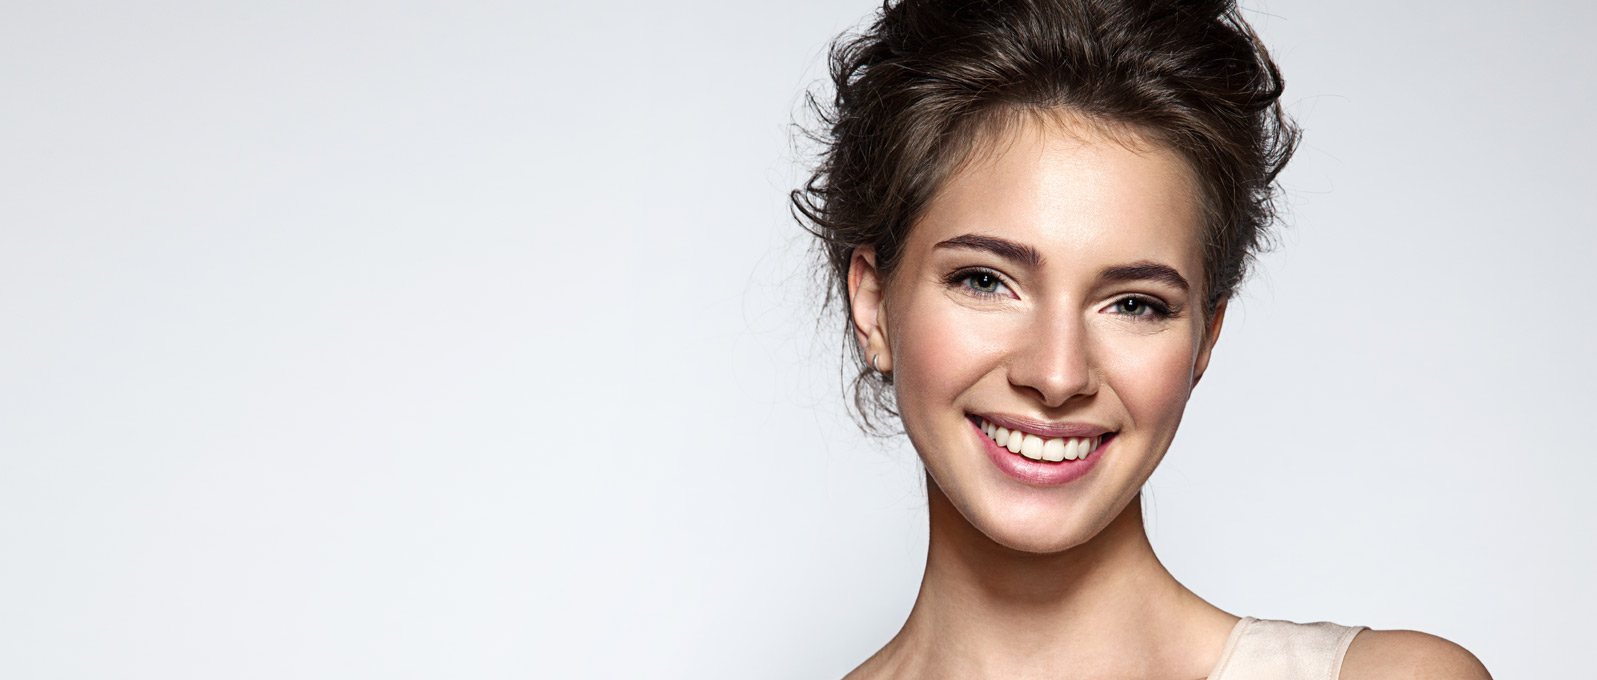 woman smiling with smooth skin and light make up